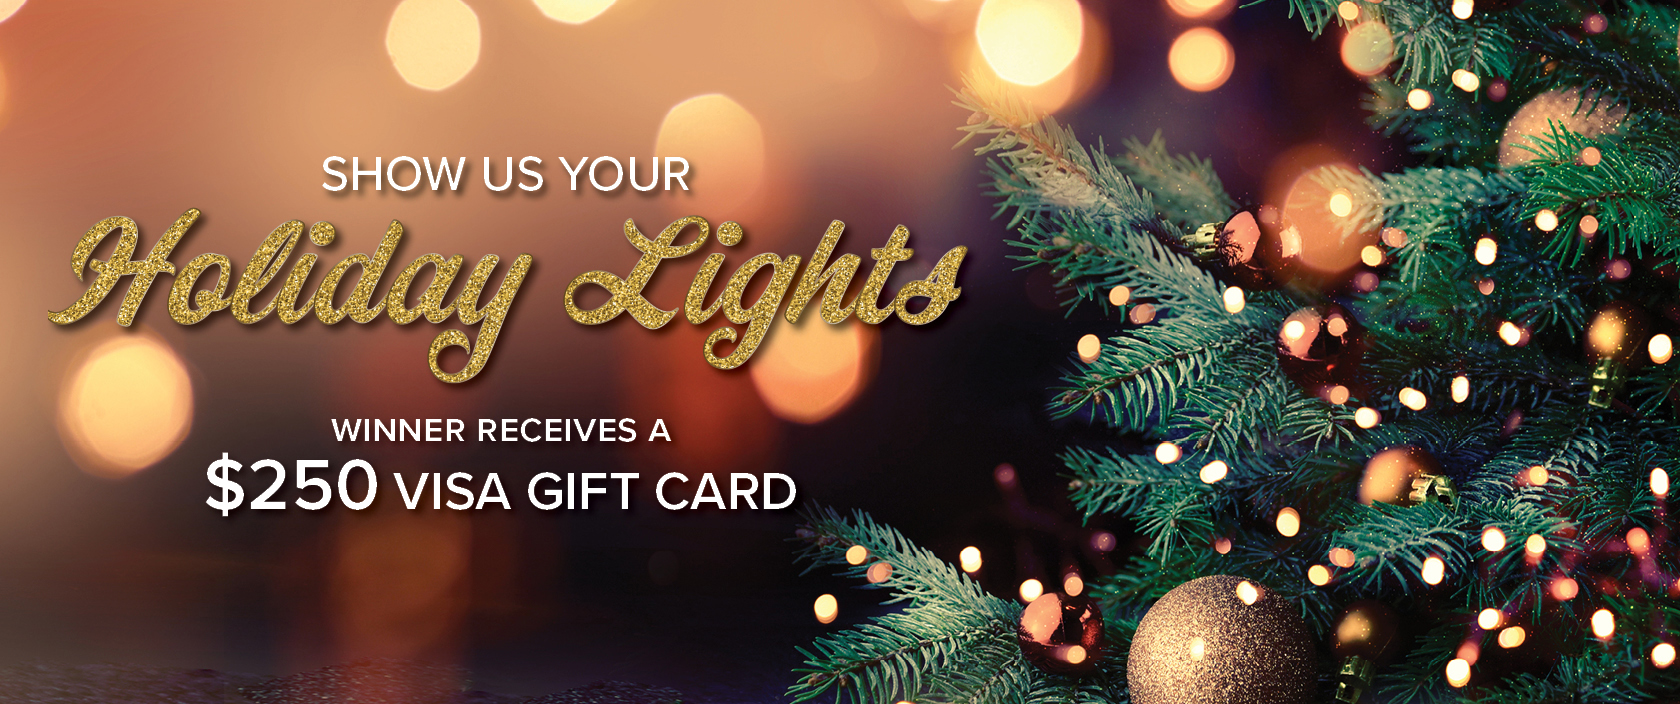 Show us your holiday lights! Winner receives a $250 gift card.